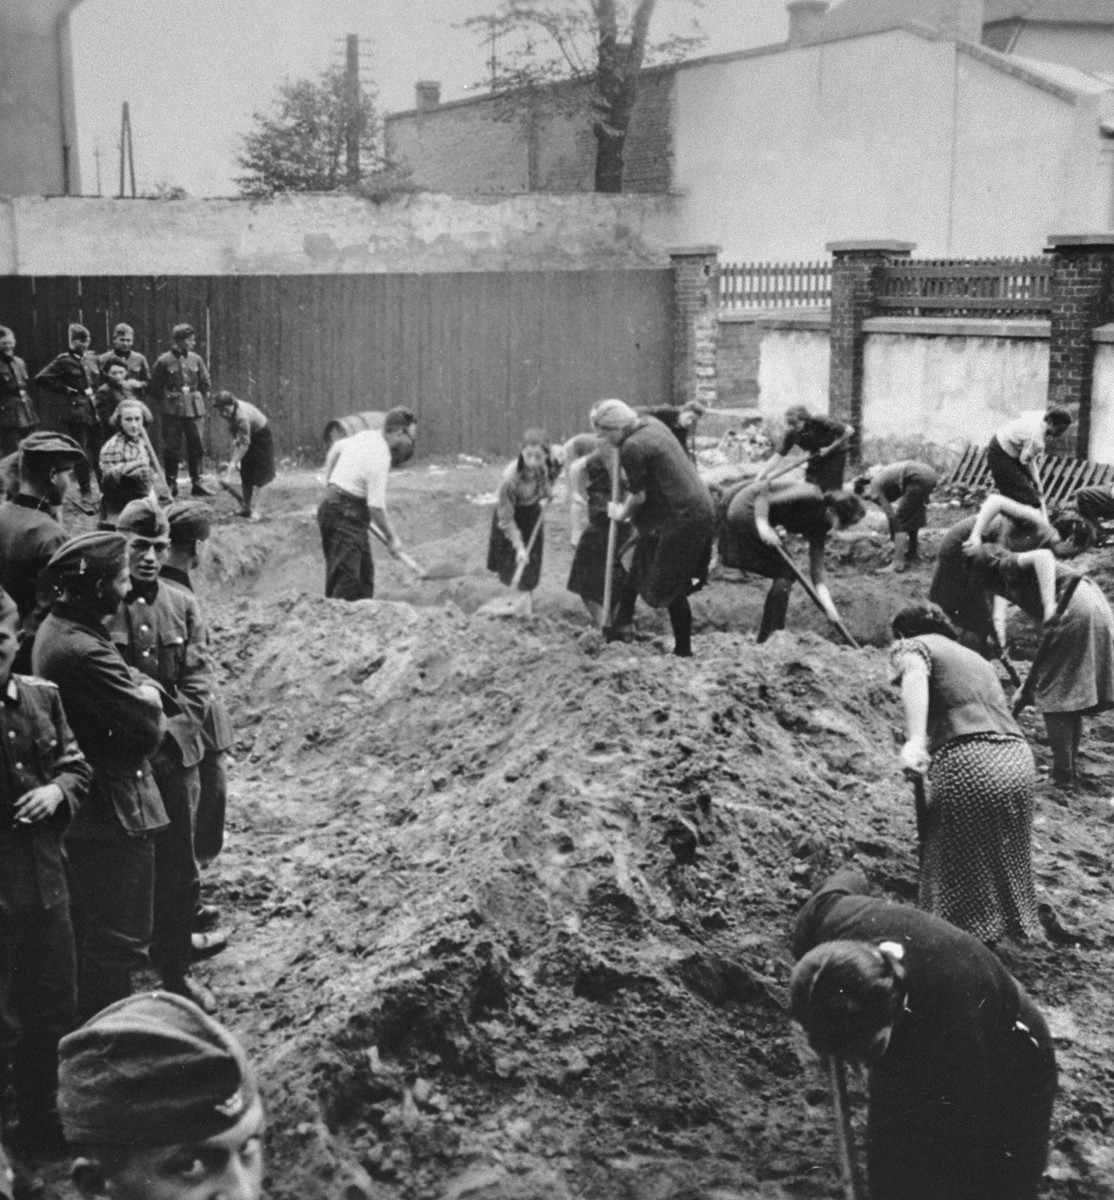 German troops look on as a group of Jews --all but one of whom are women-- dig ditches in a fenced-in lot in Krakow.